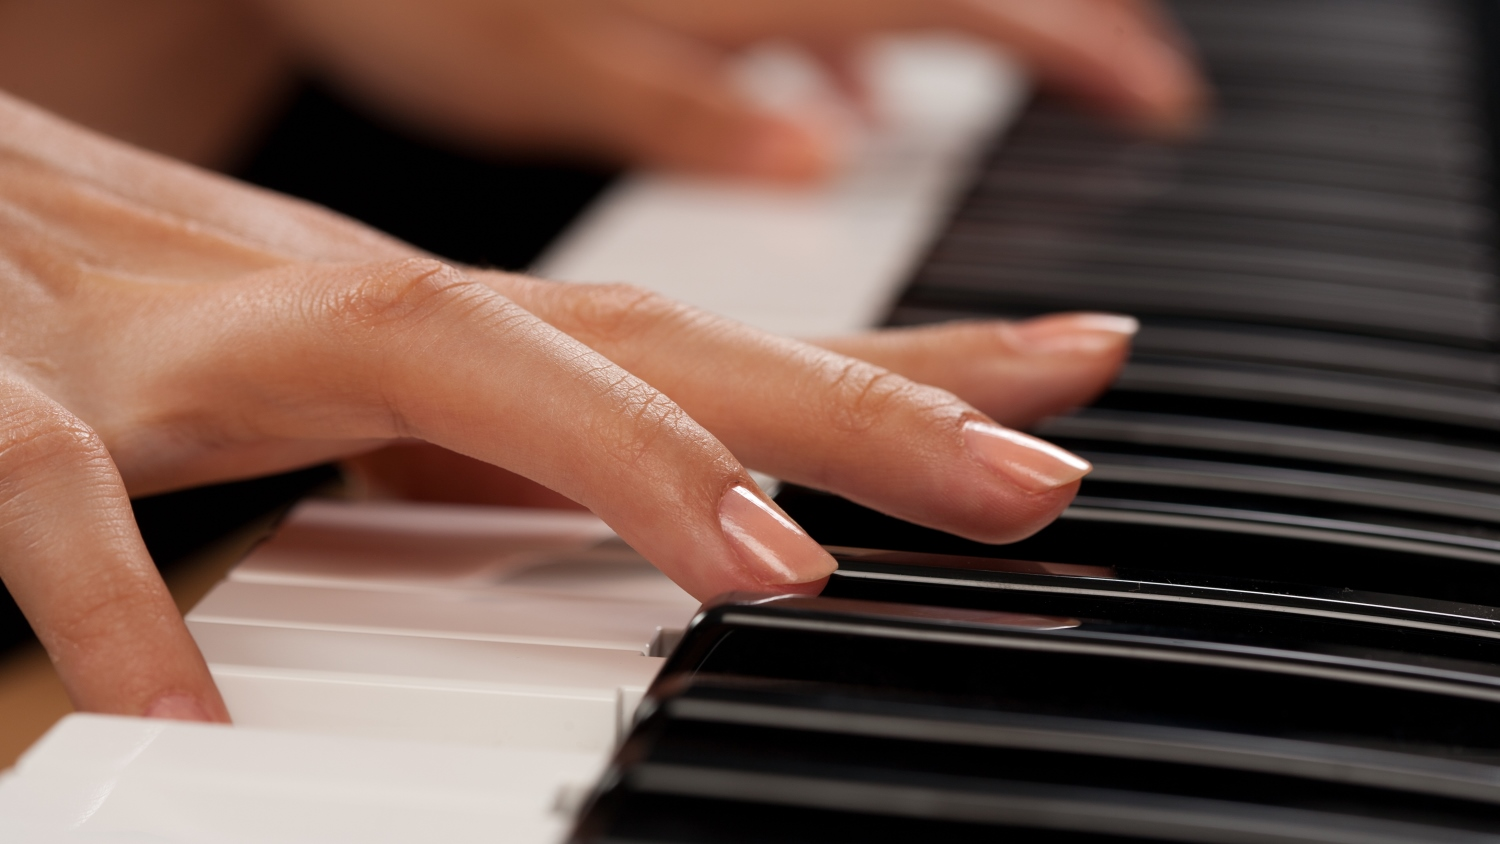 Woman's hands playing the piano